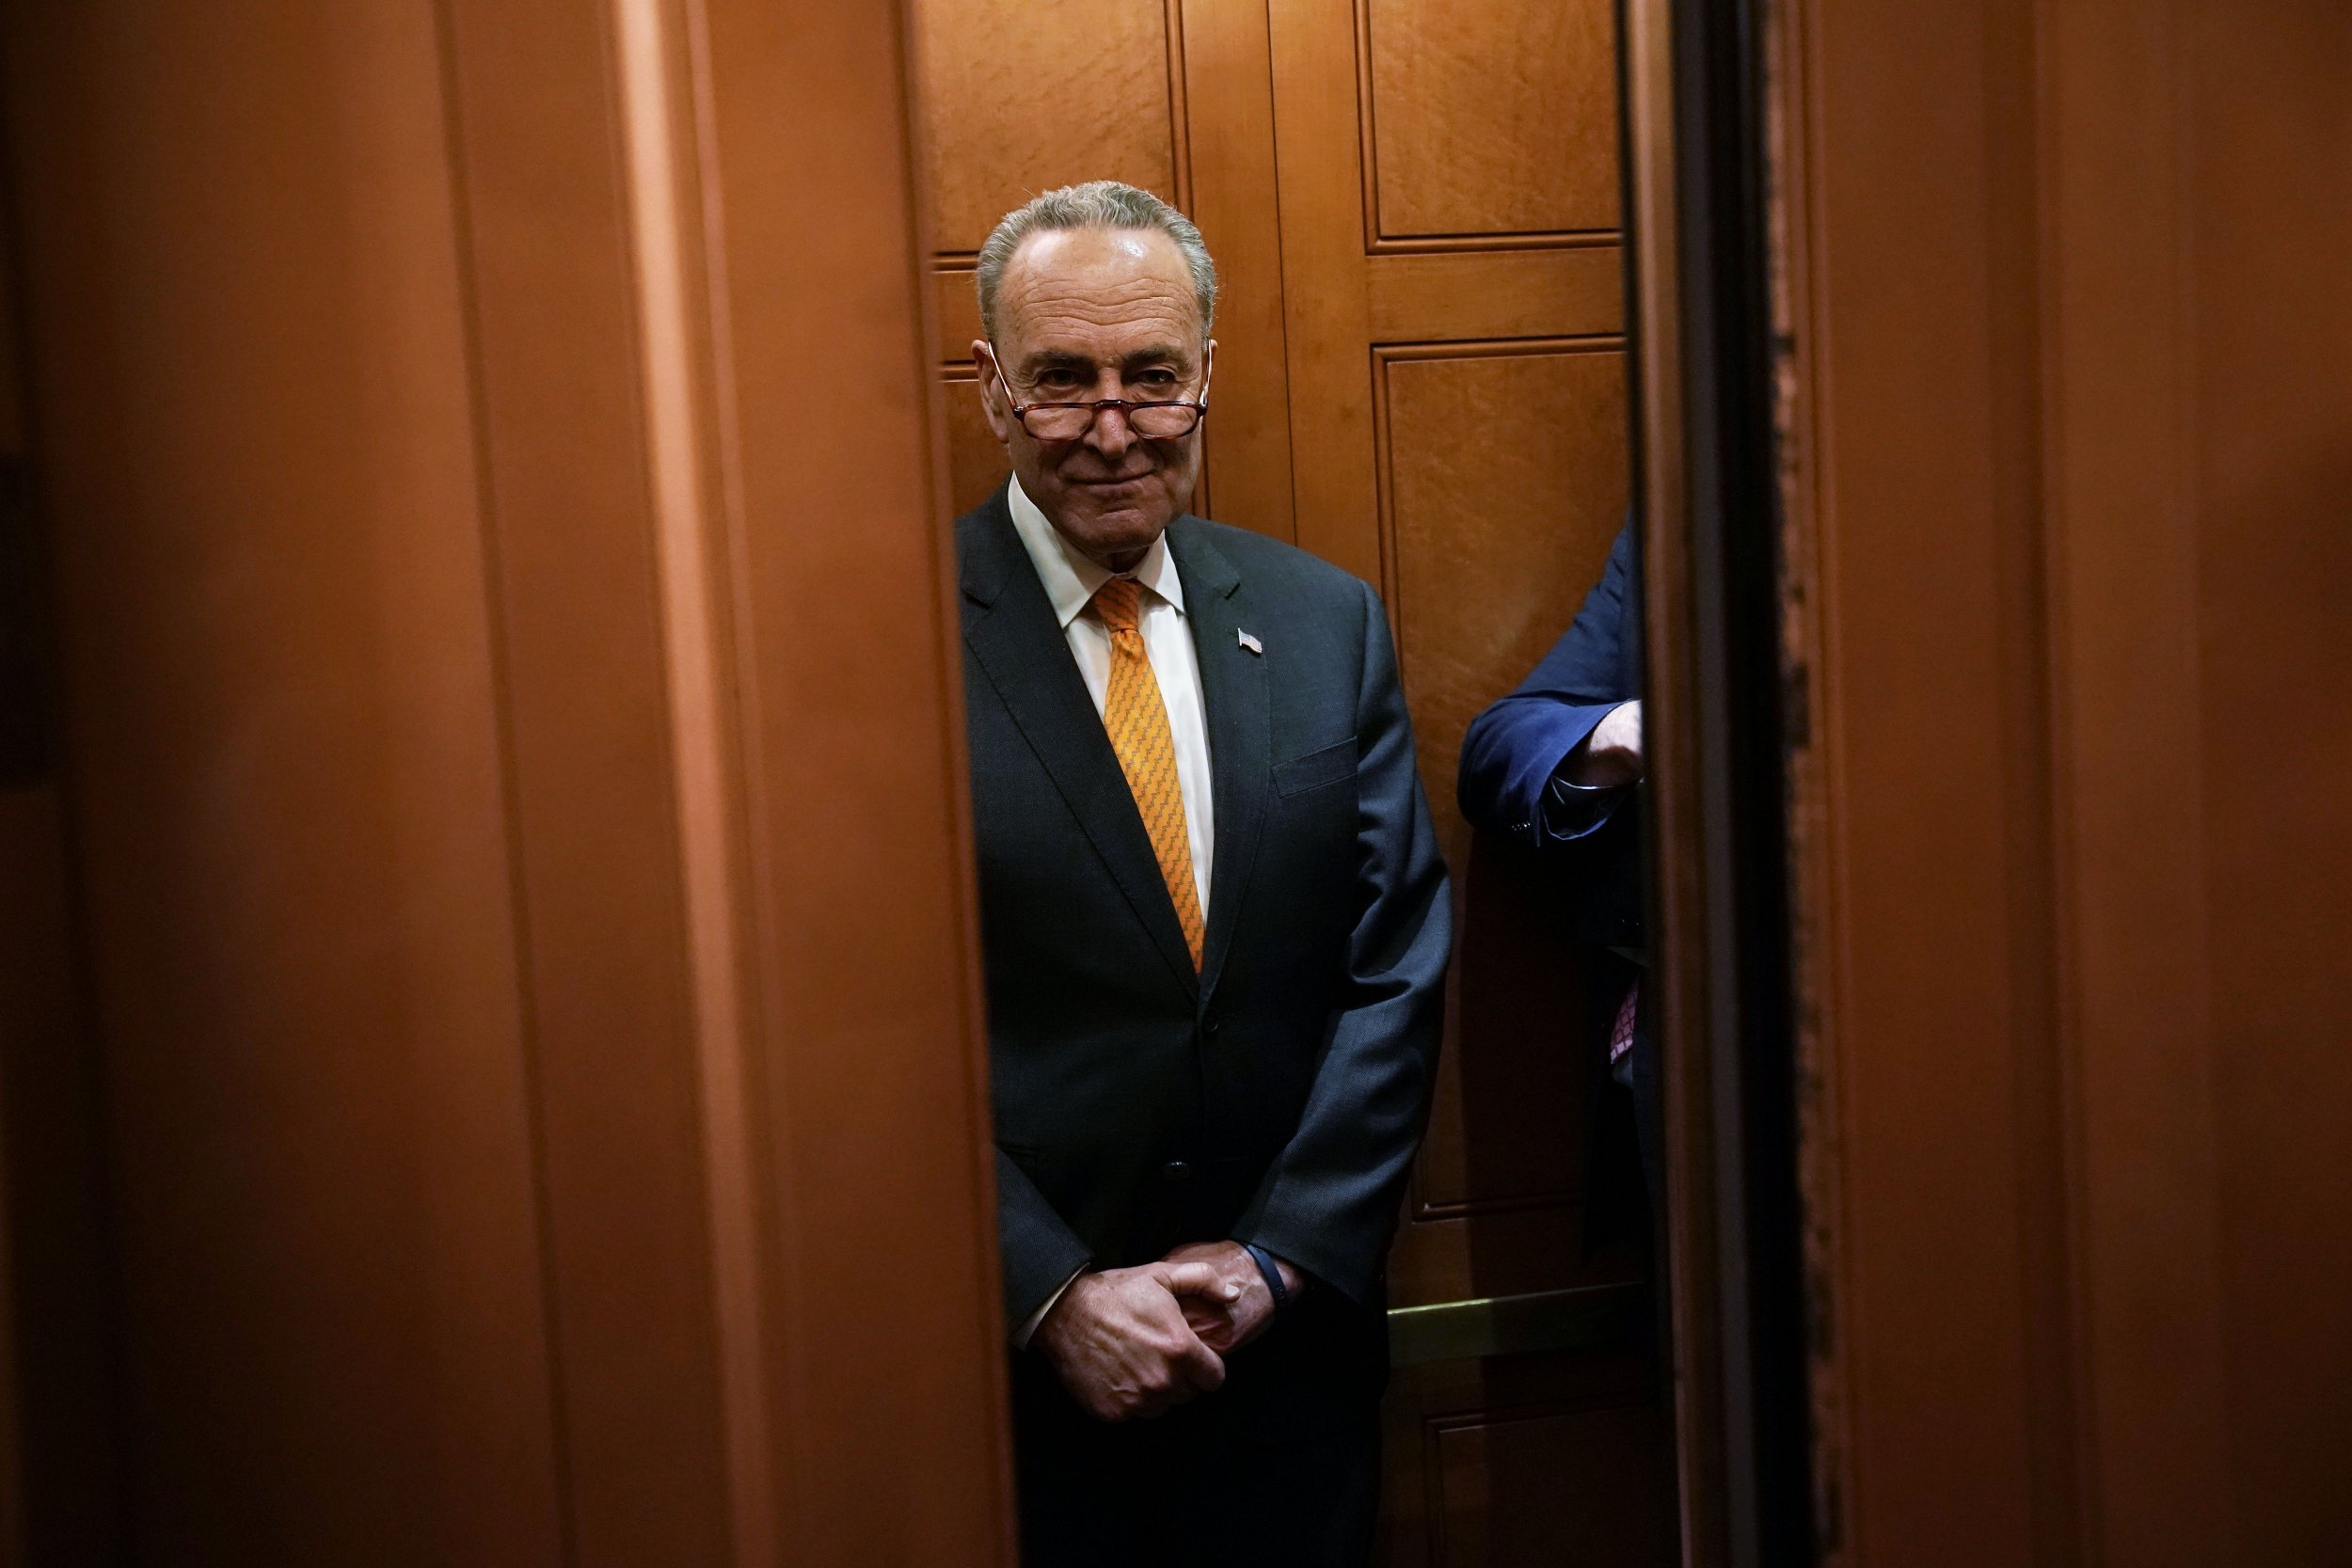 Chuck Schumer: William Barr Refused to Provide Assurances on Russia Probe and Mueller's Report